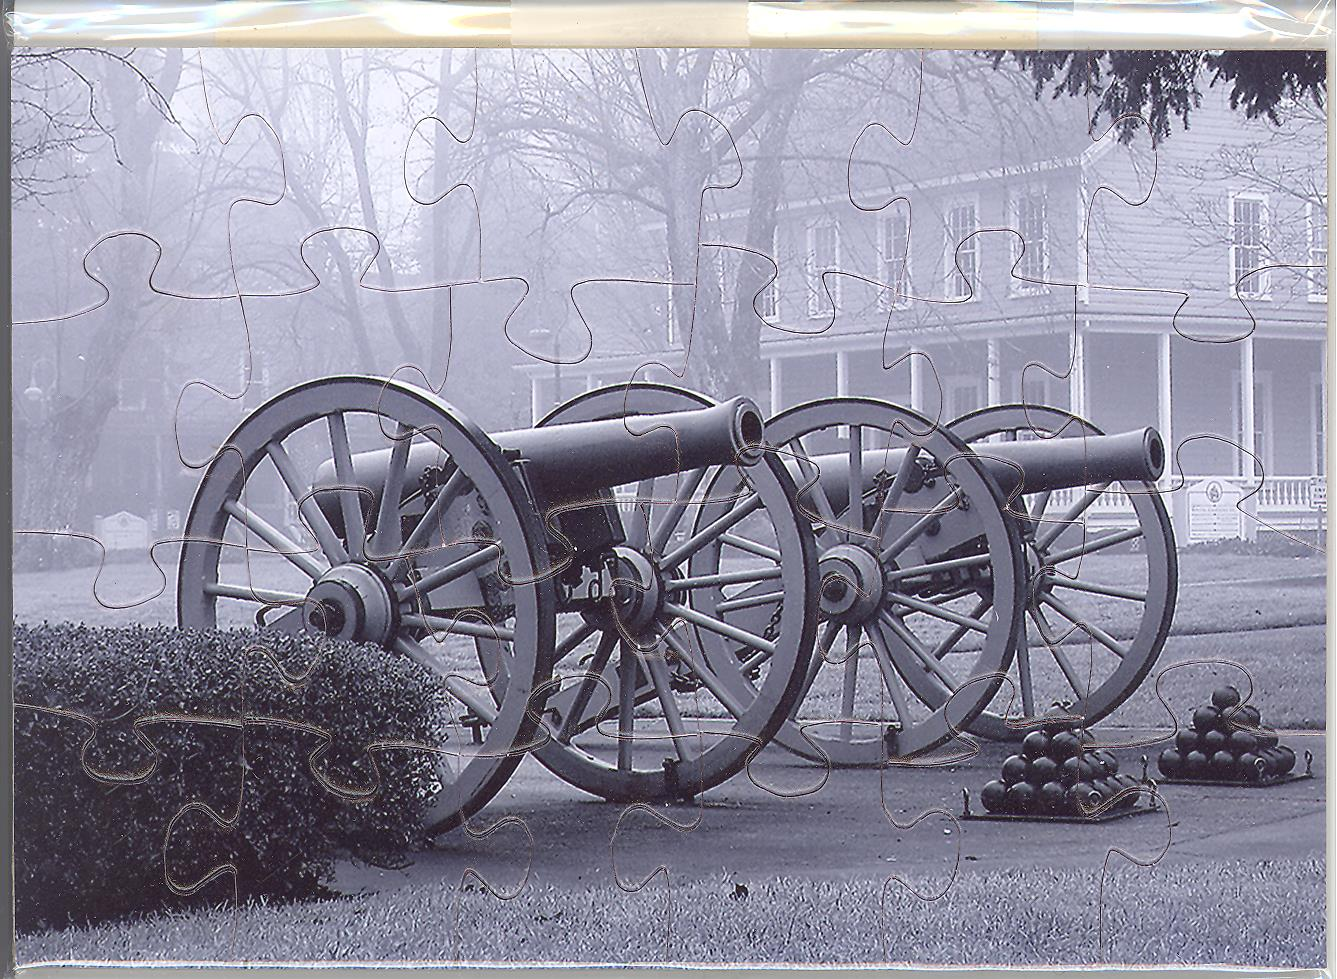 Puzzle Postcard Cannons on Officers' Row by Pam Gunn